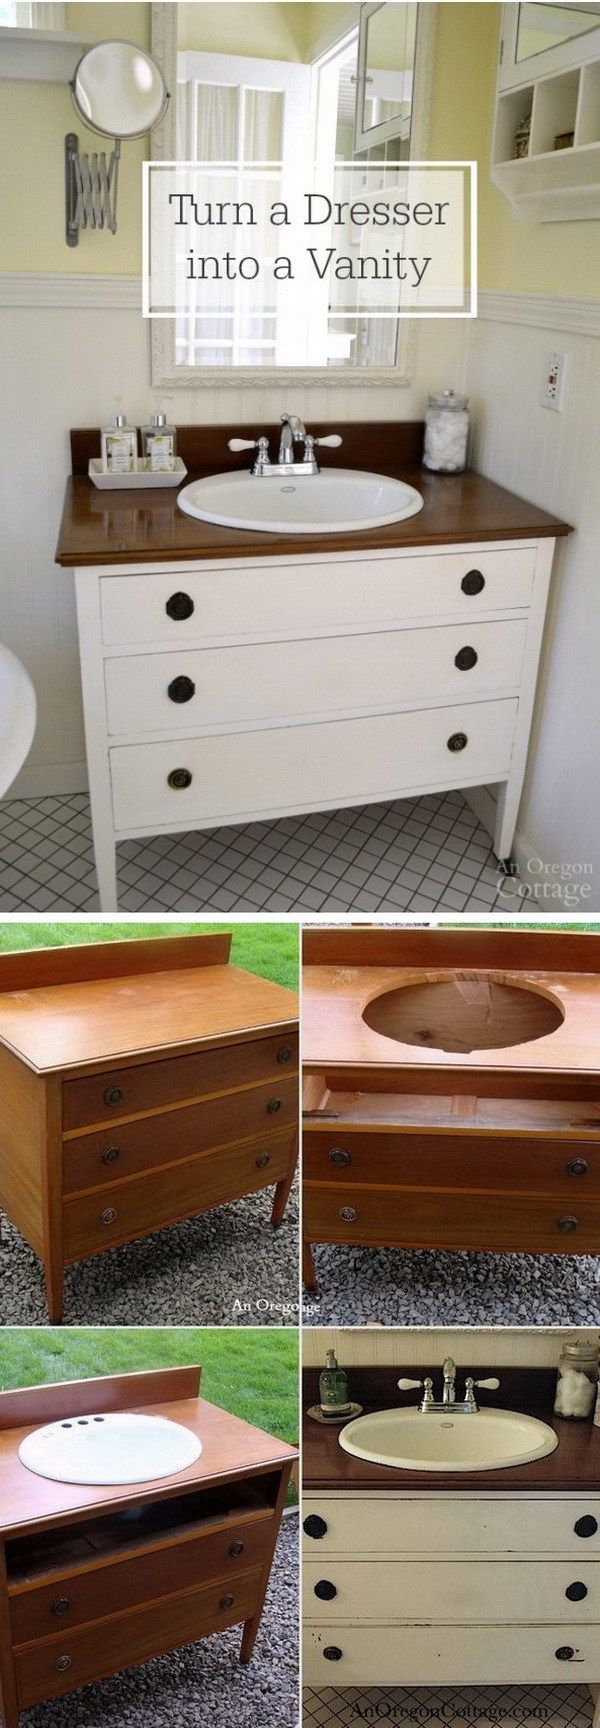 30 creative and easy diy furniture hacks wohnen - Diy badezimmer ...